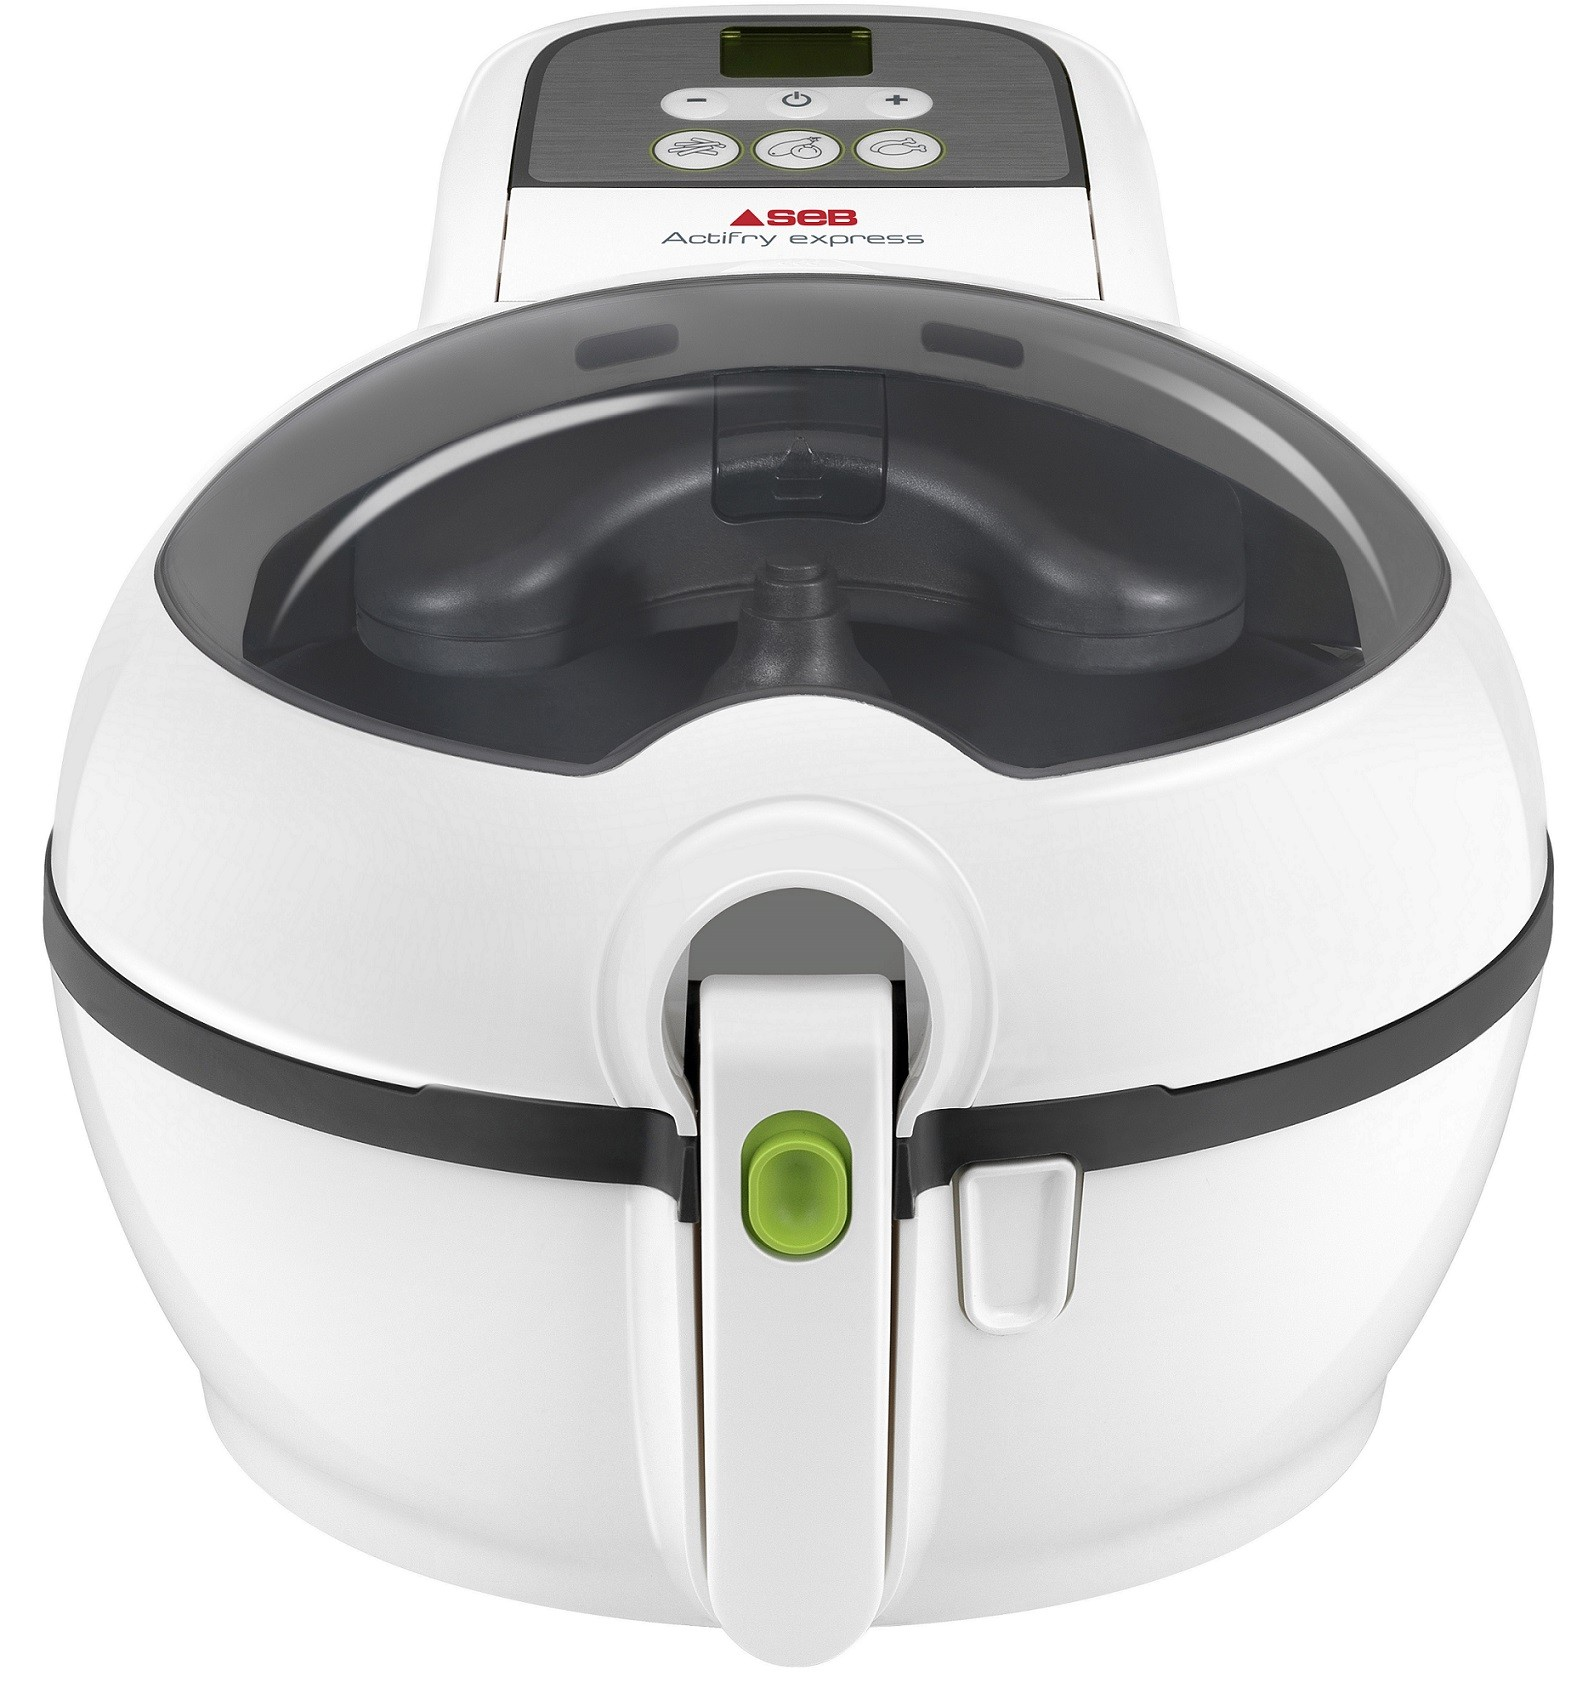 SEB - Actifry Express 1Kg Blanche - FZ750000